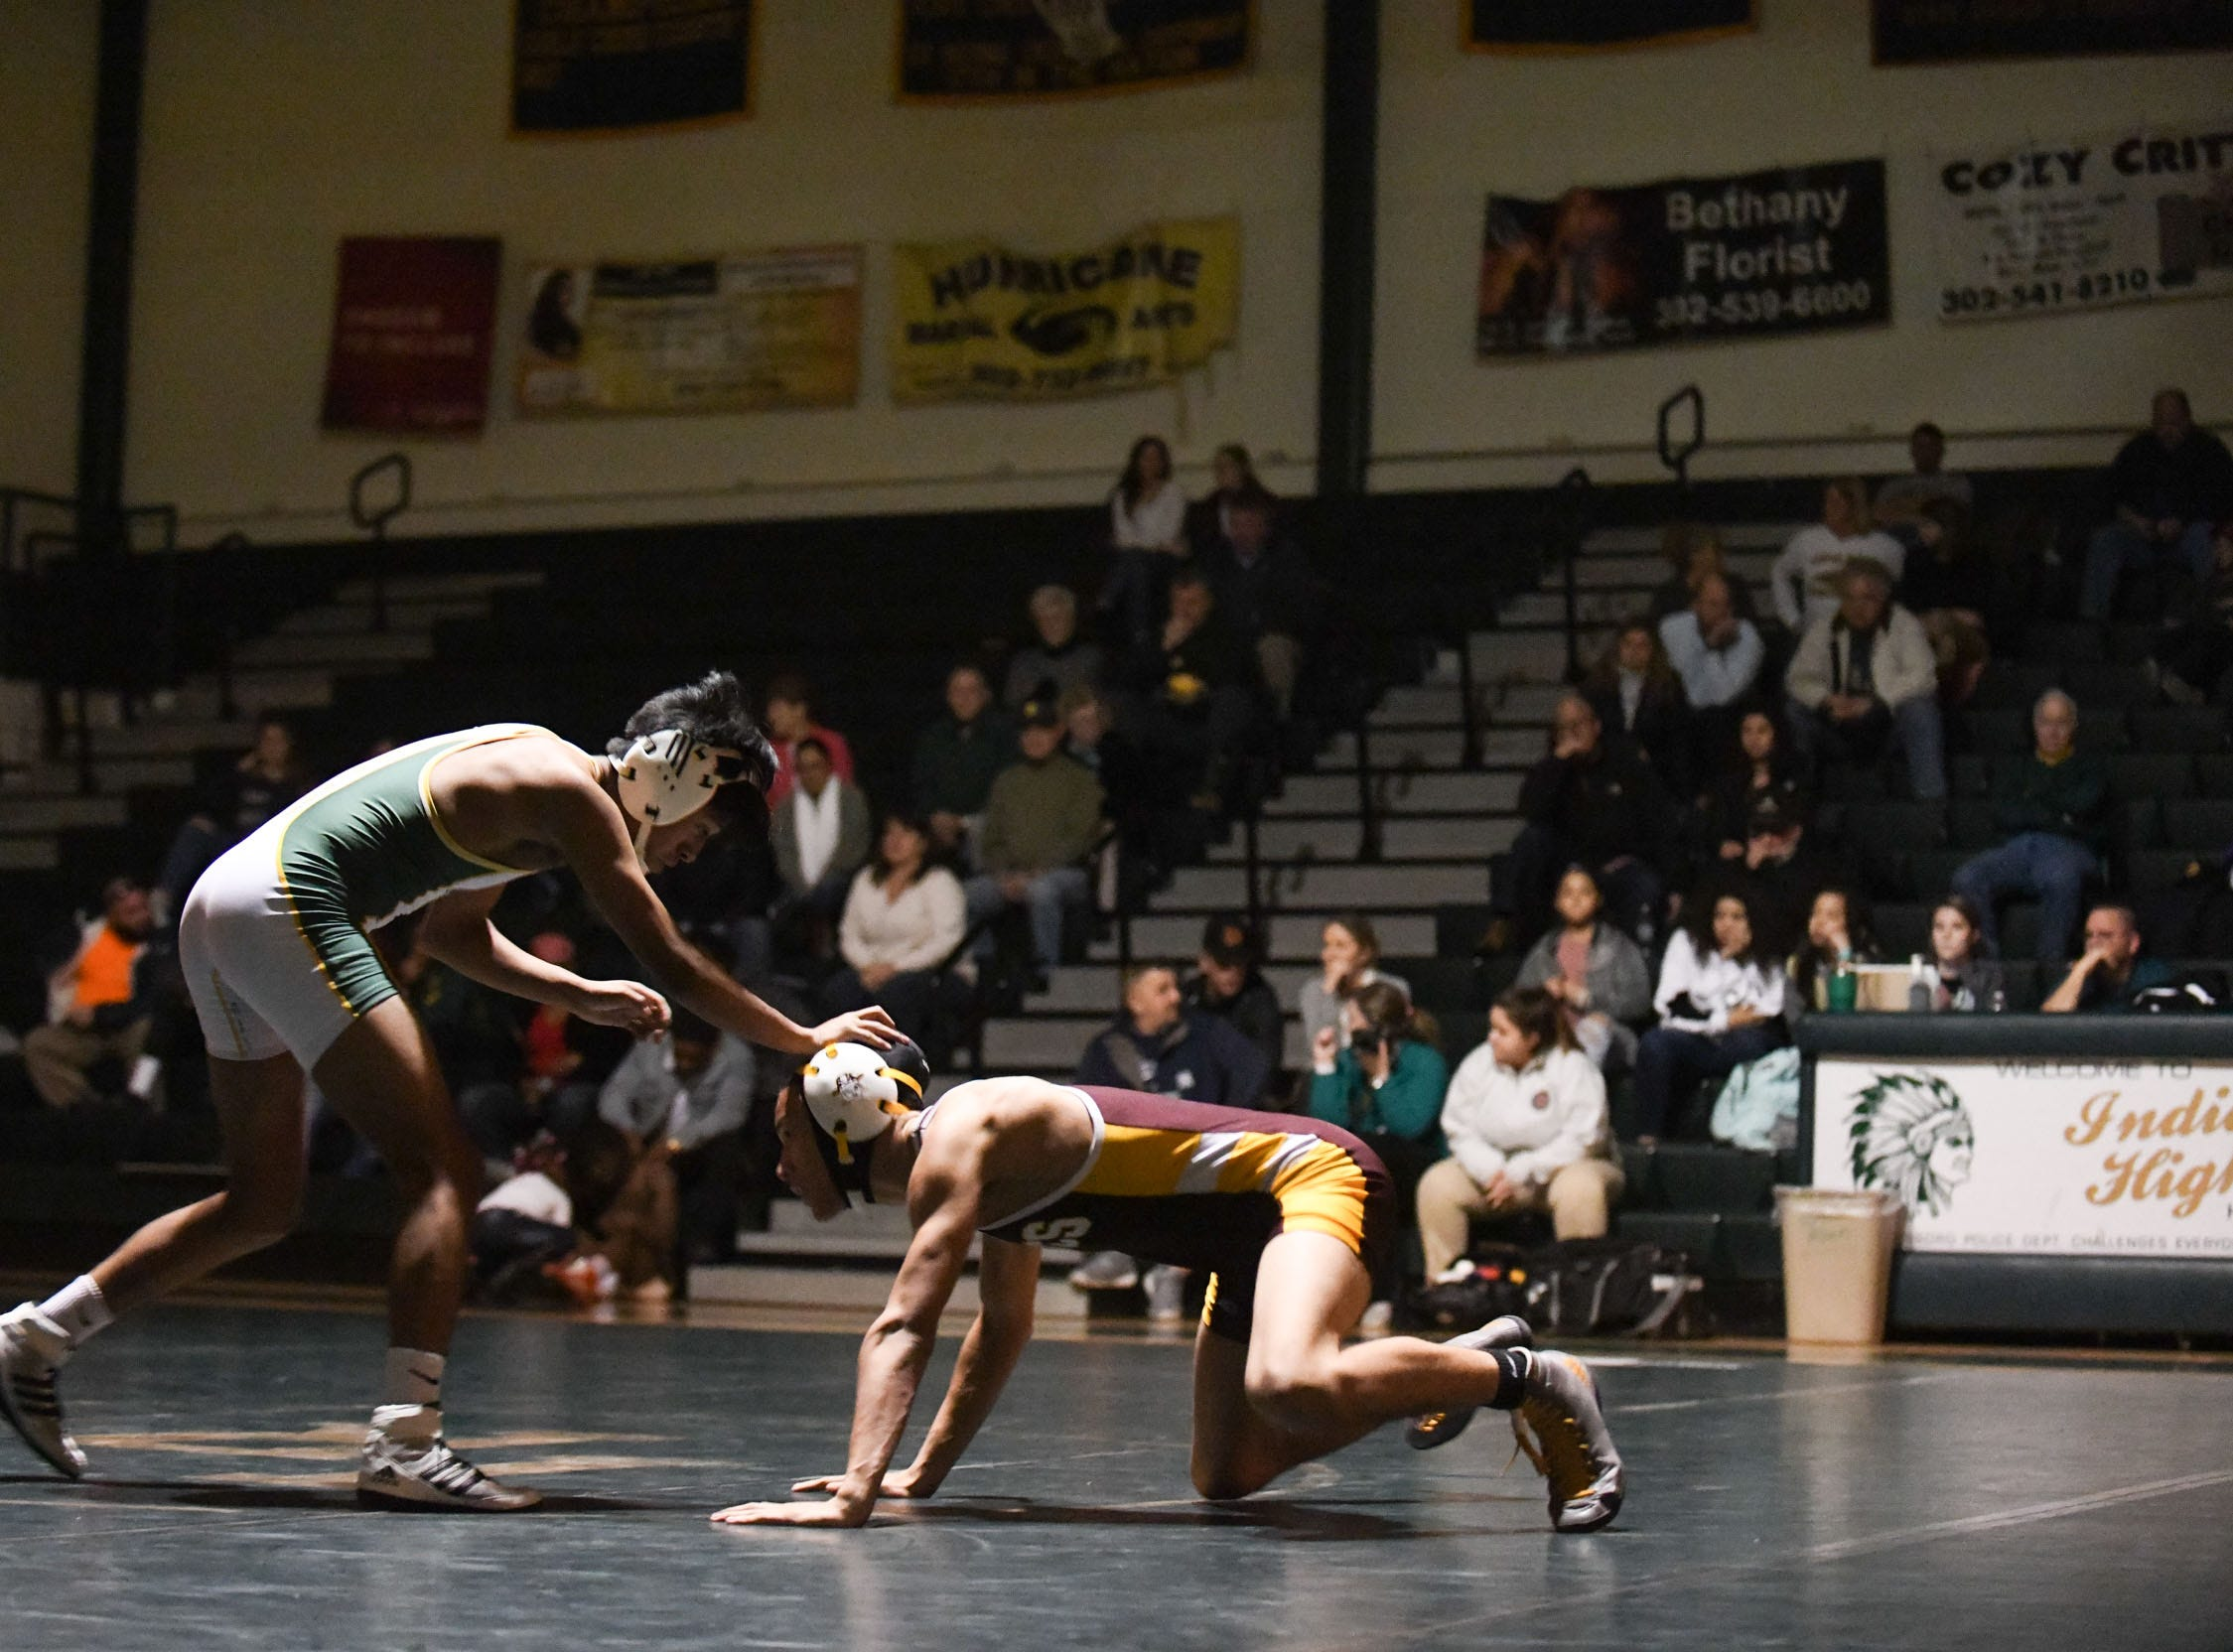 Indian River's Christian Galindo Lopez battled Milford's Averi Copes during the 132lb match on Thursday, Jan 17, 2019 in Dagsboro, Del. Milford won the match 53-15.